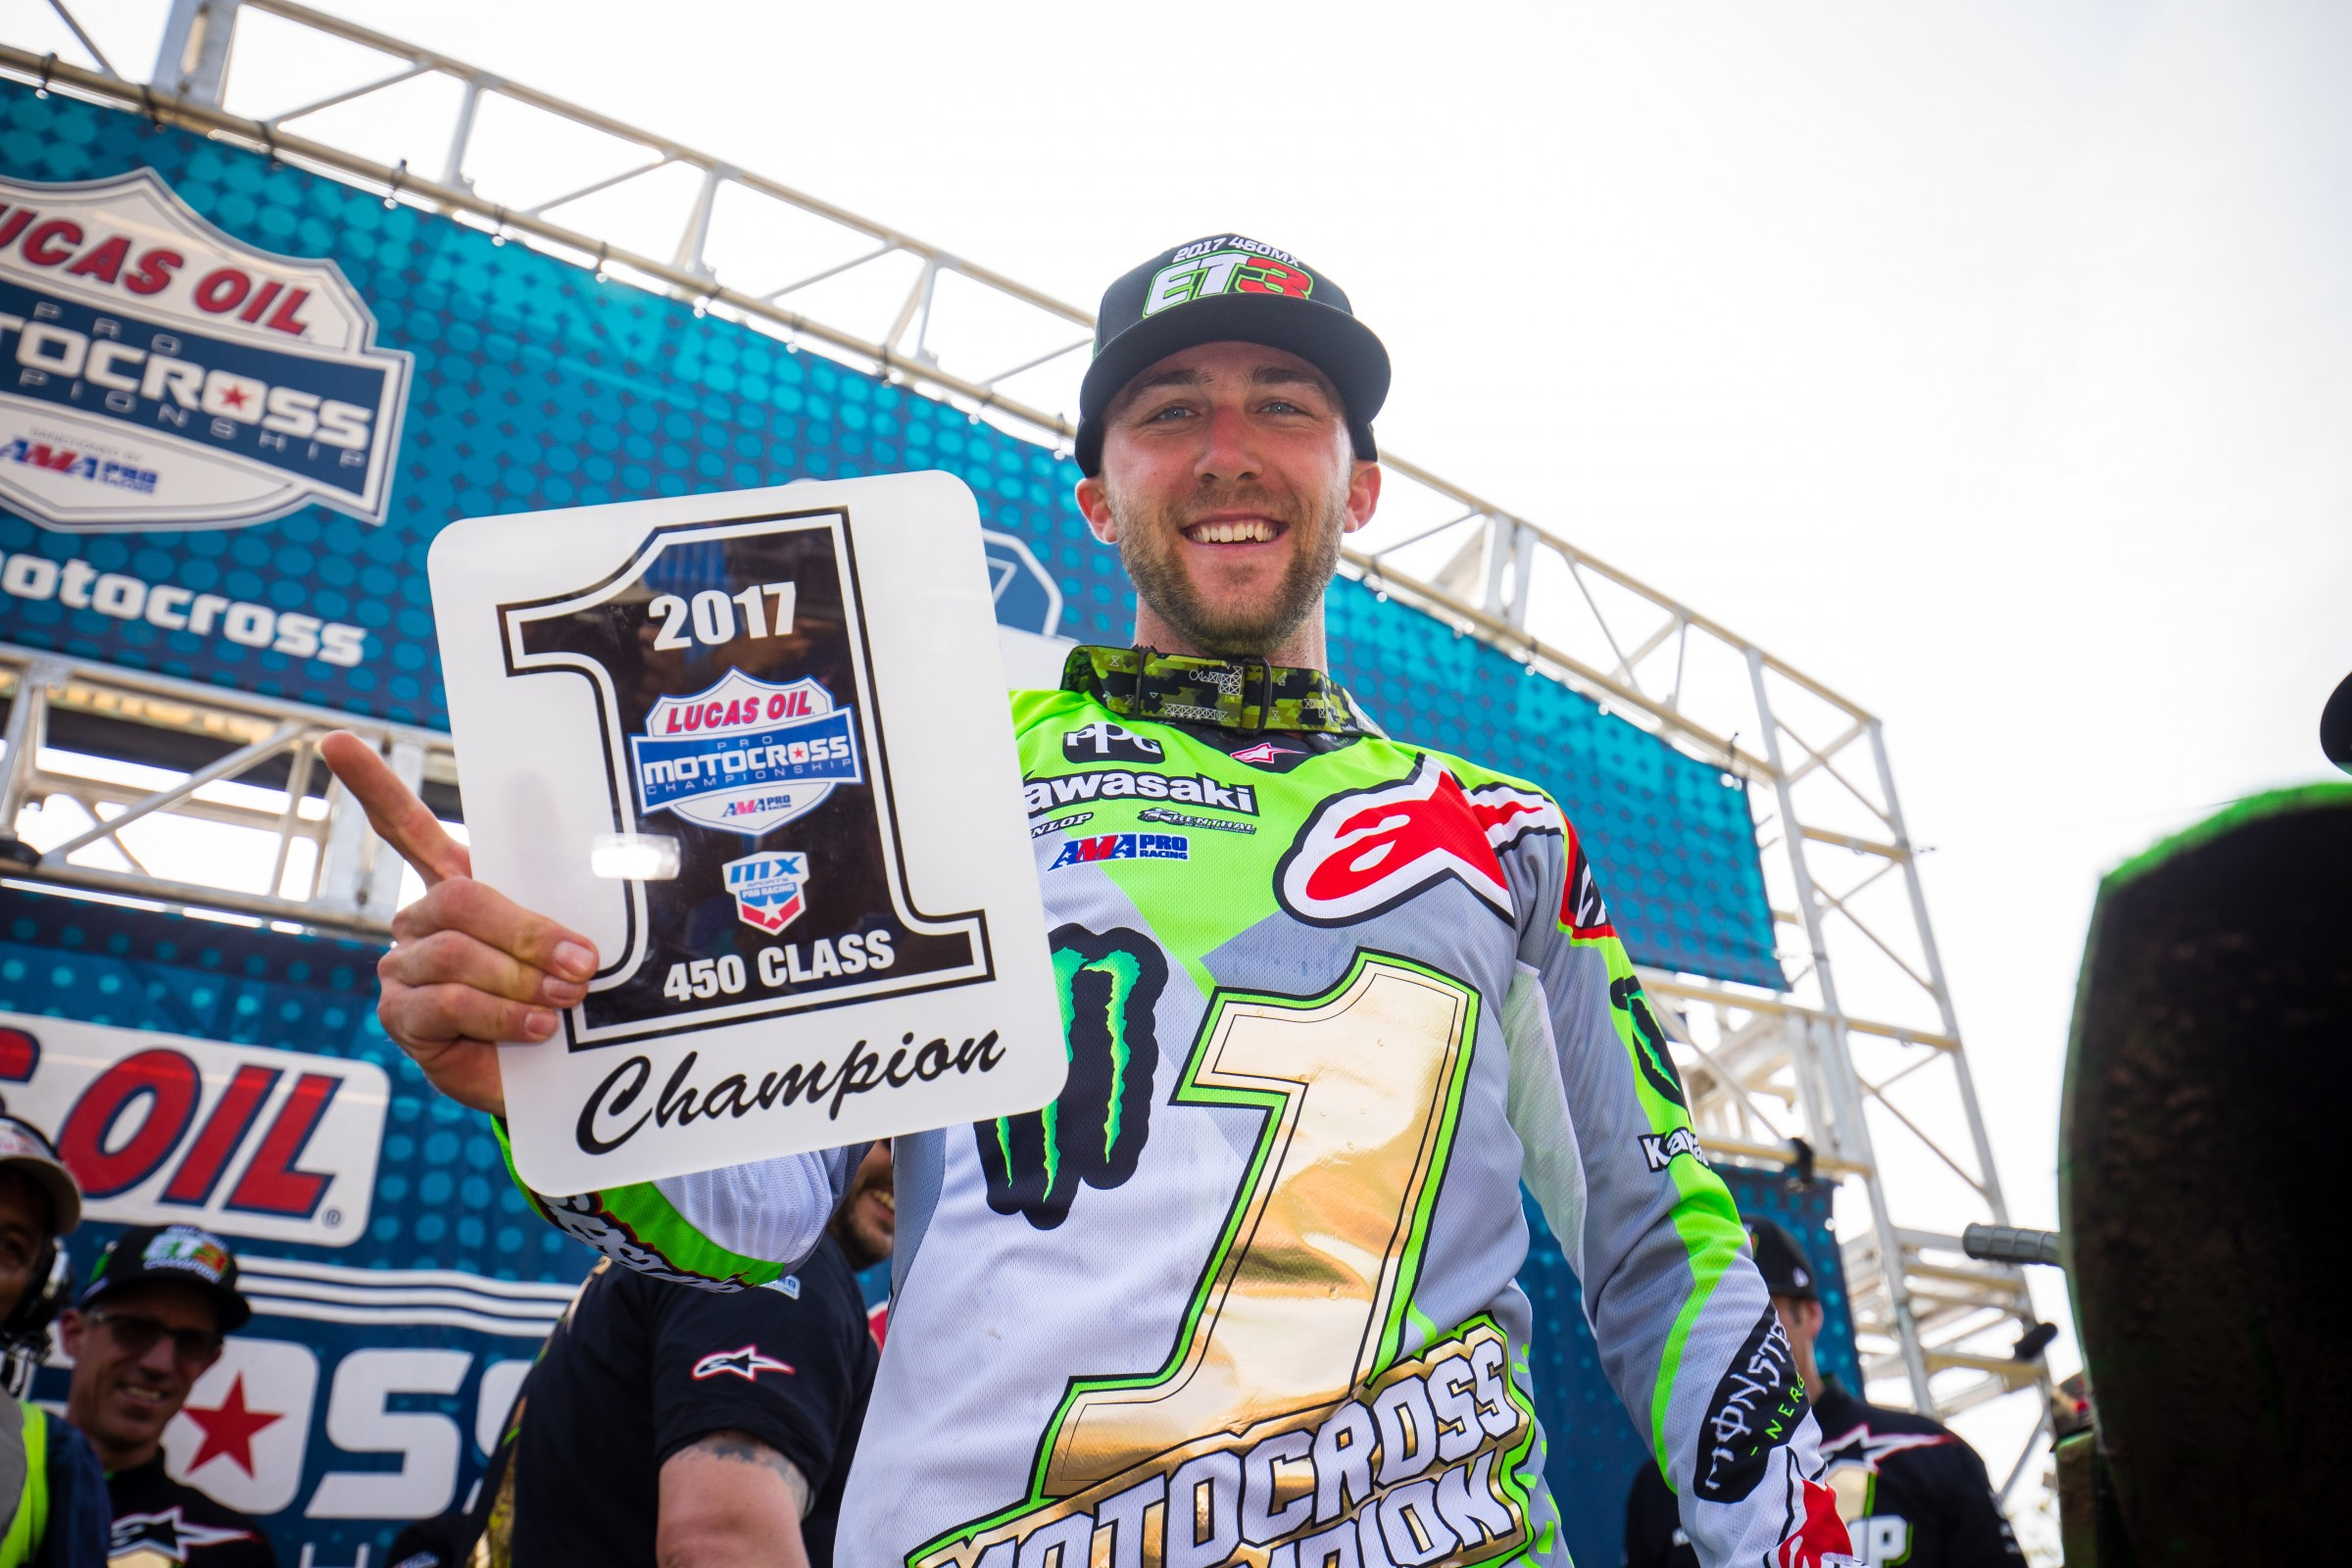 Tomac won the 2017 Lucas Oil Pro Motocross Championship with a 17-point lead.